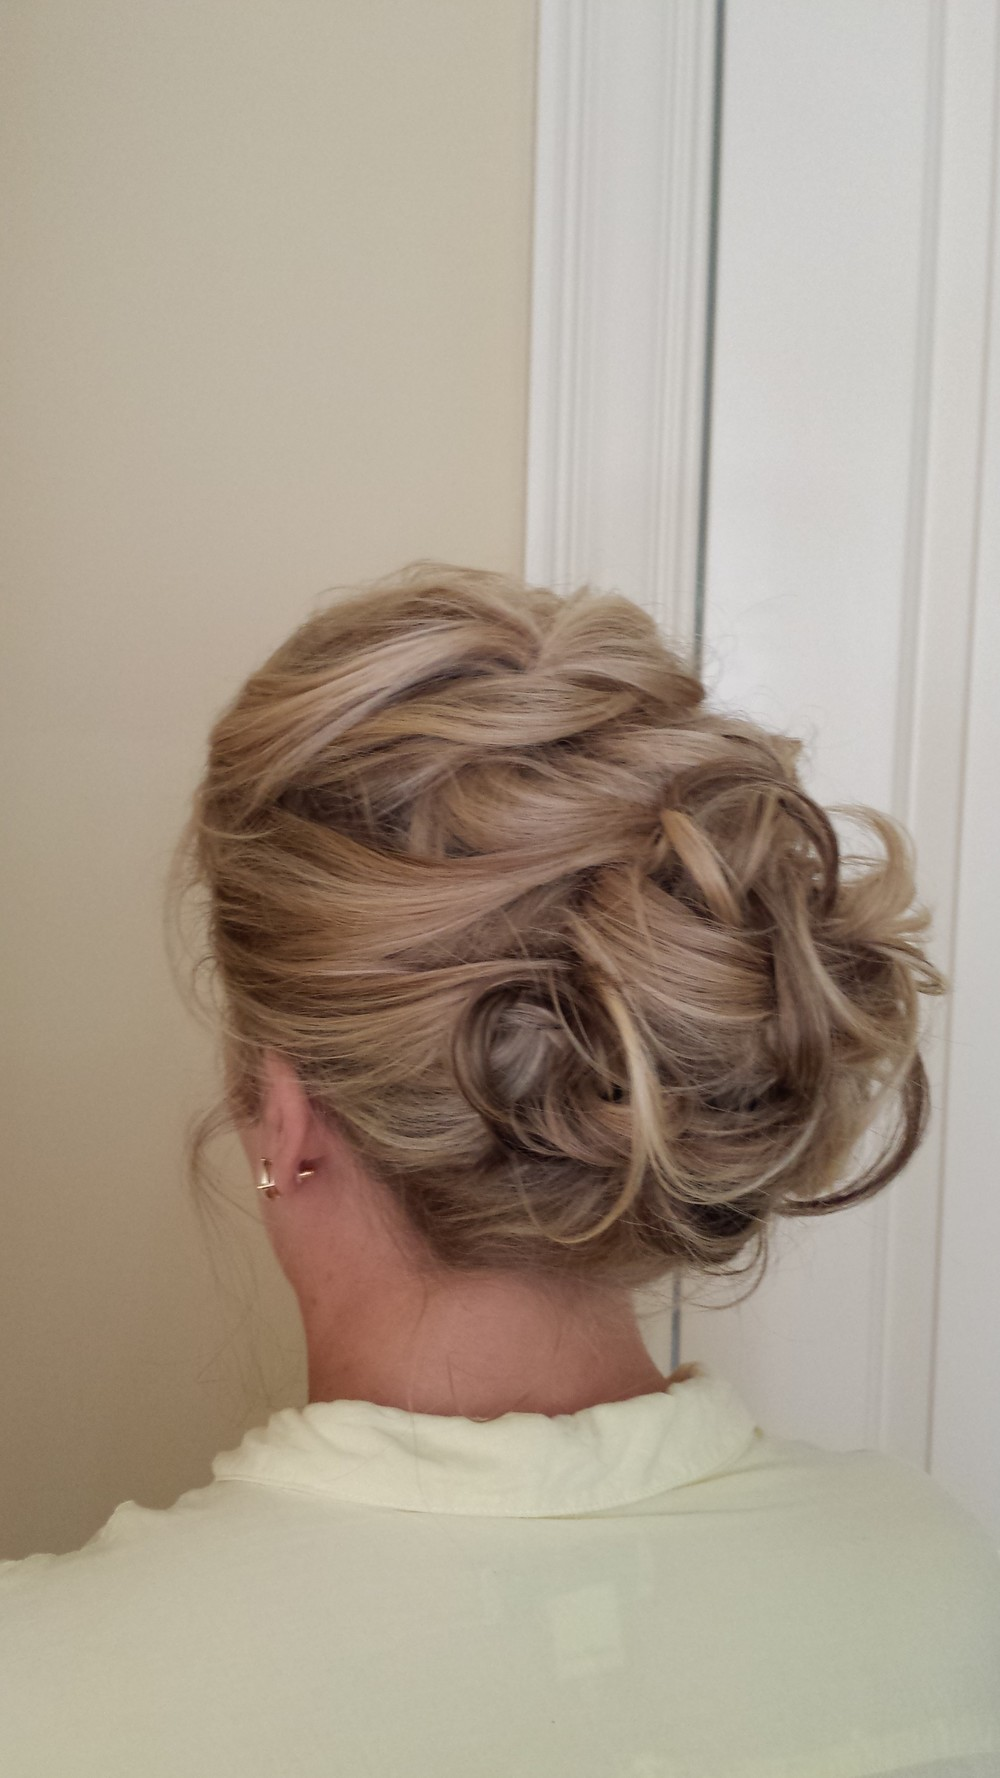 Loose bridal updo by Beyond Beautiful by Heather, Savannah, GA